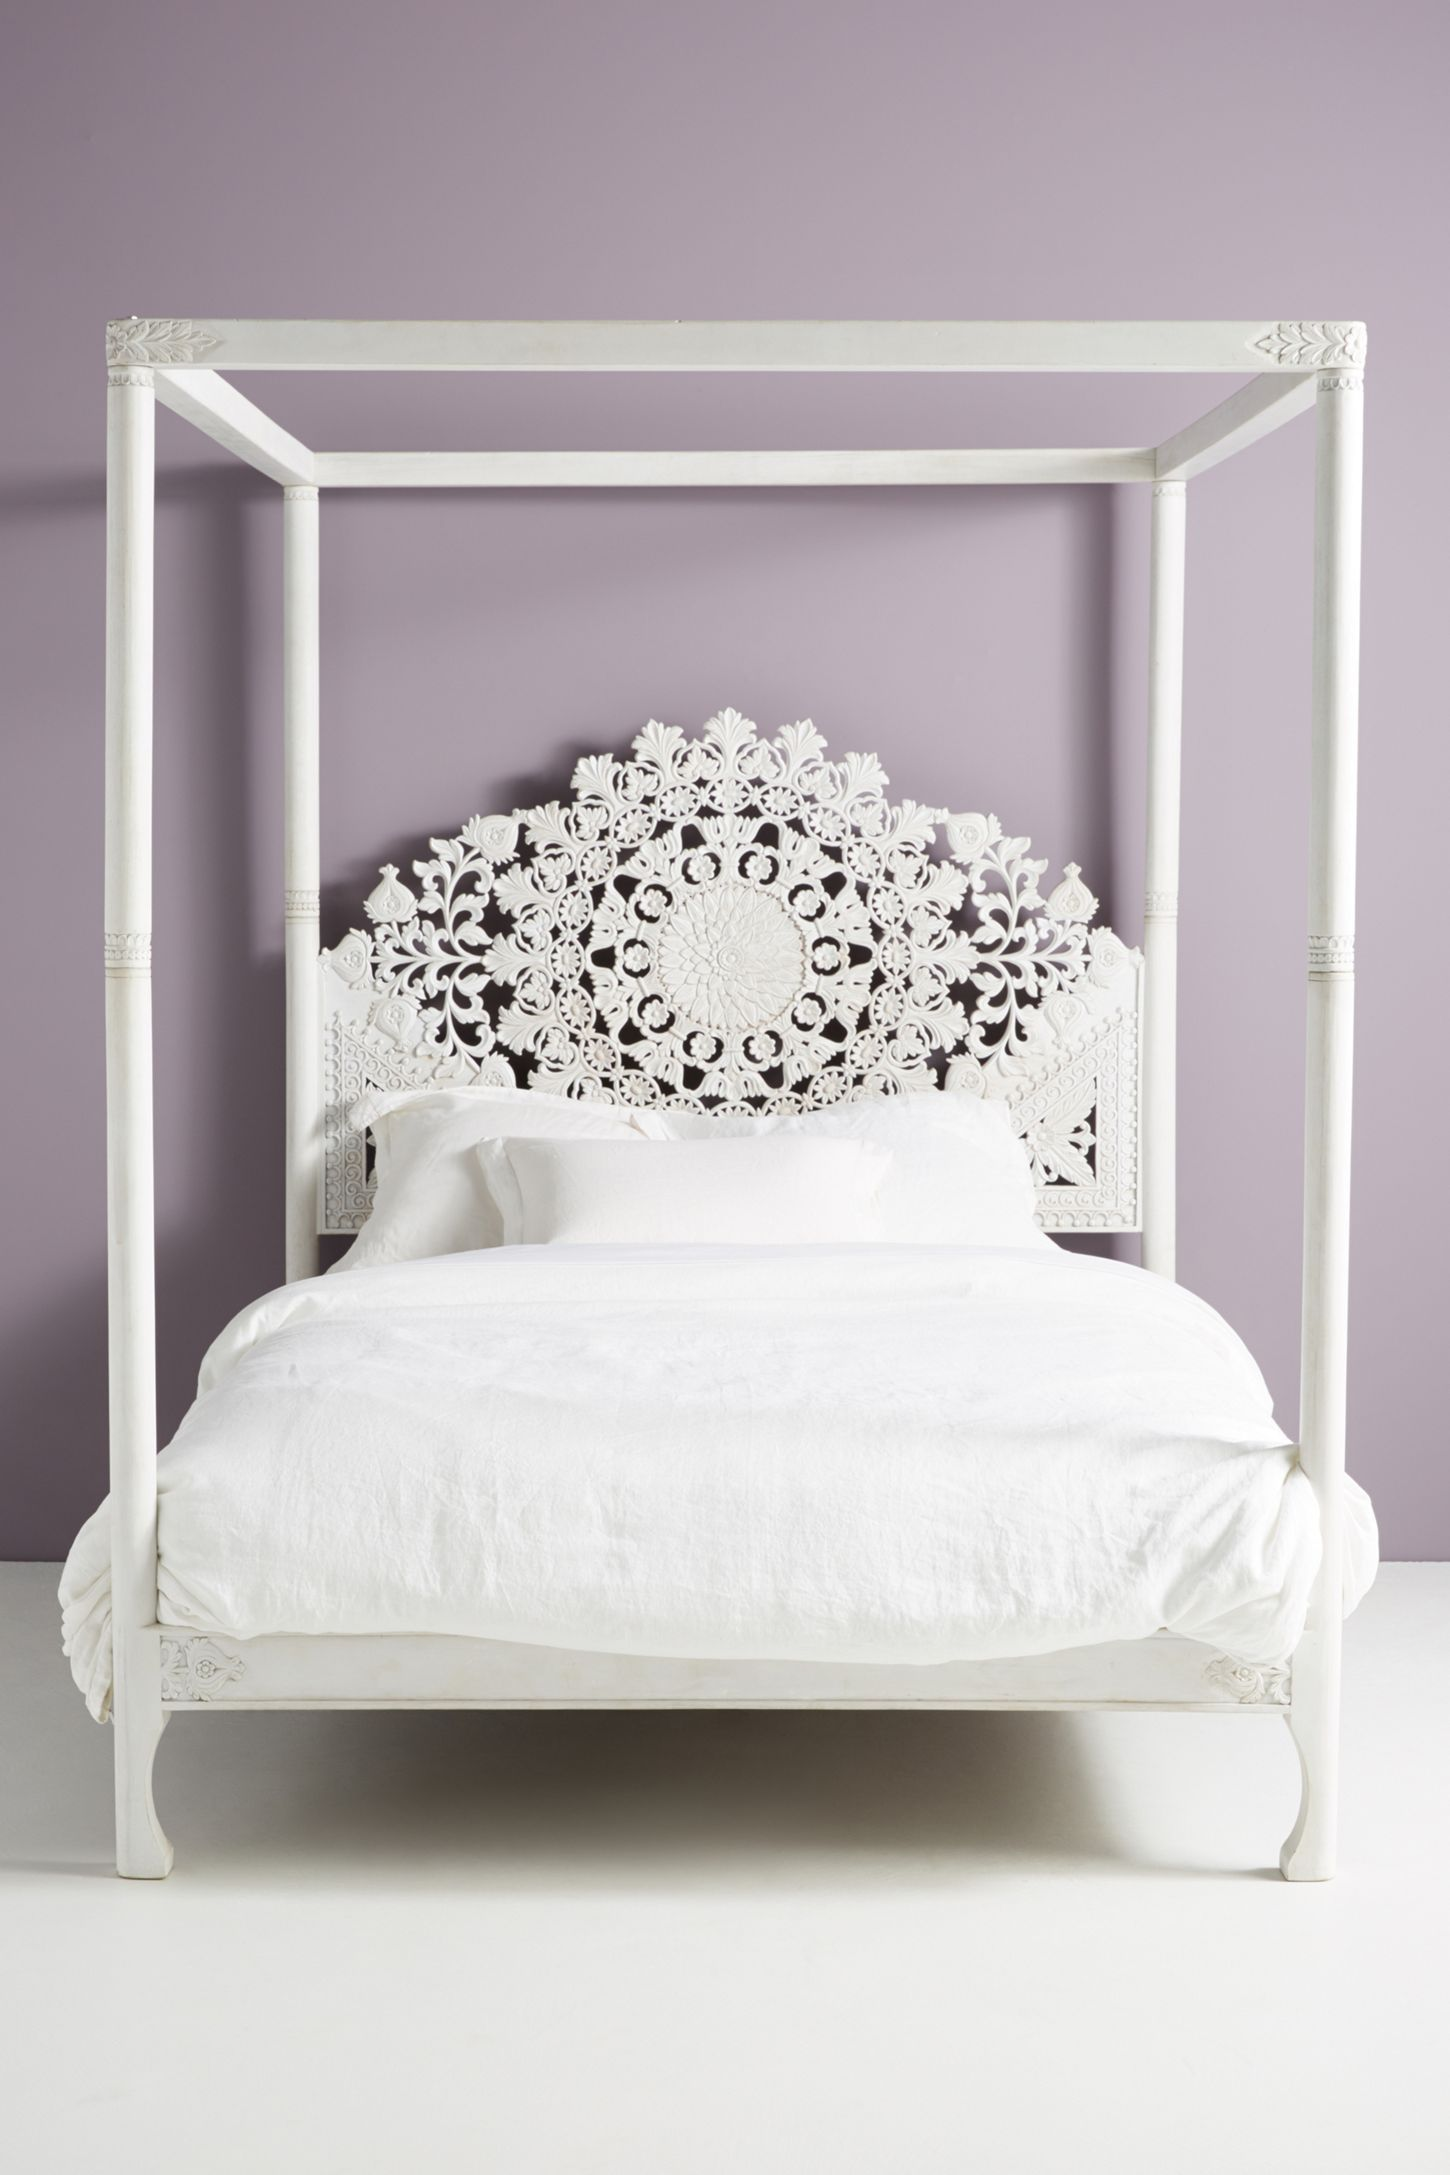 Suzani Four Poster Bed Four Poster Bed Home Interior Design Home Decor Bedroom